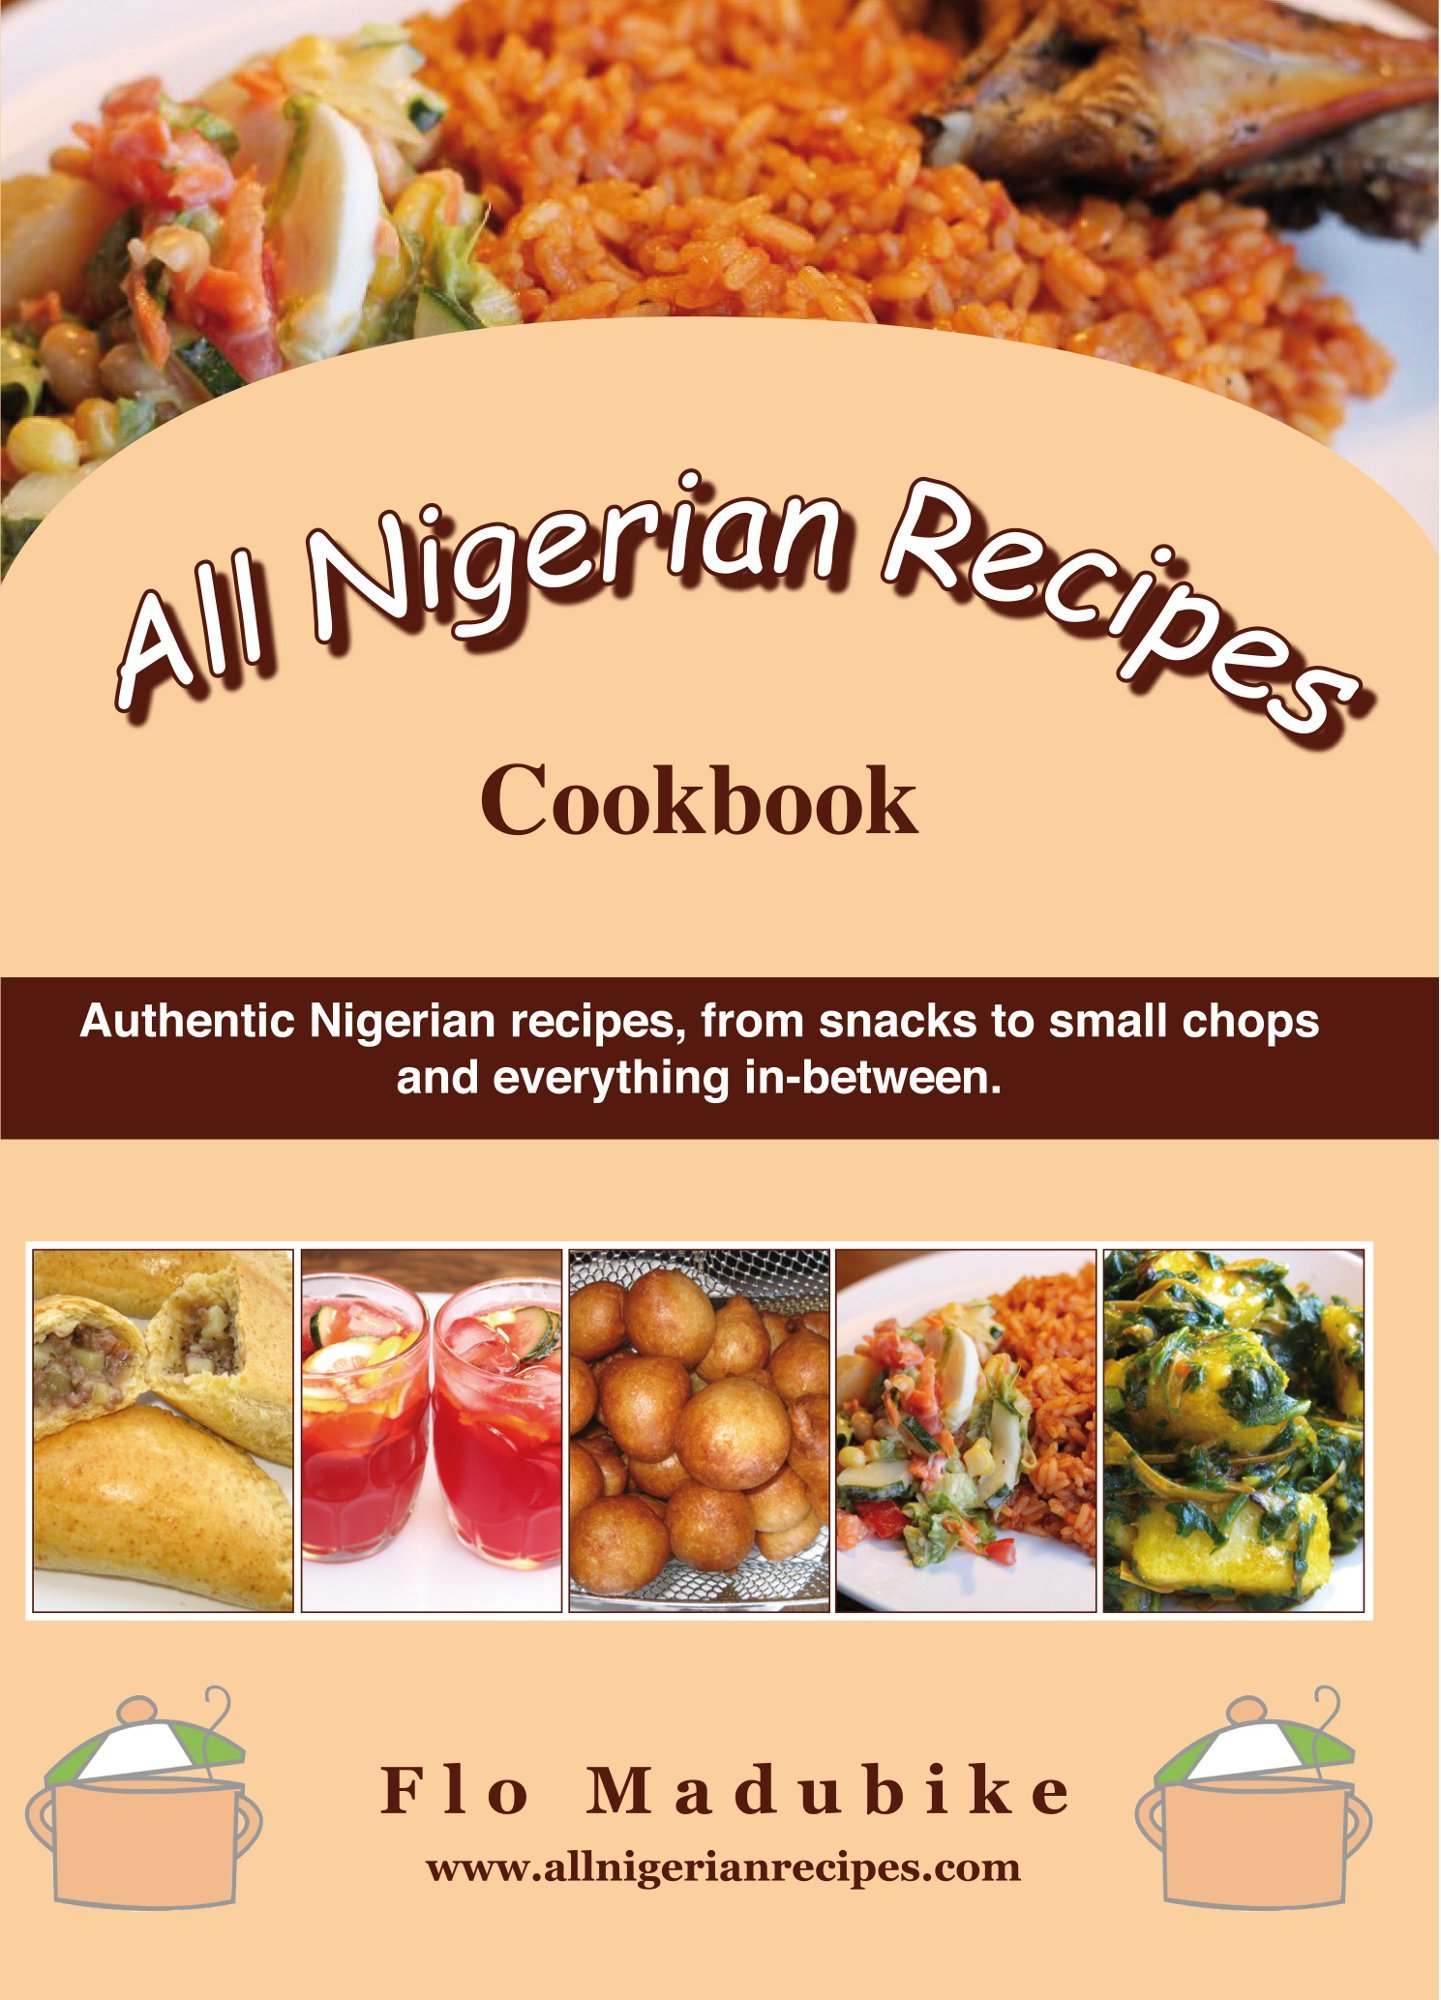 All nigerian recipes cookbook flo madubike 9788461617548 books all nigerian recipes cookbook flo madubike 9788461617548 books amazon forumfinder Choice Image